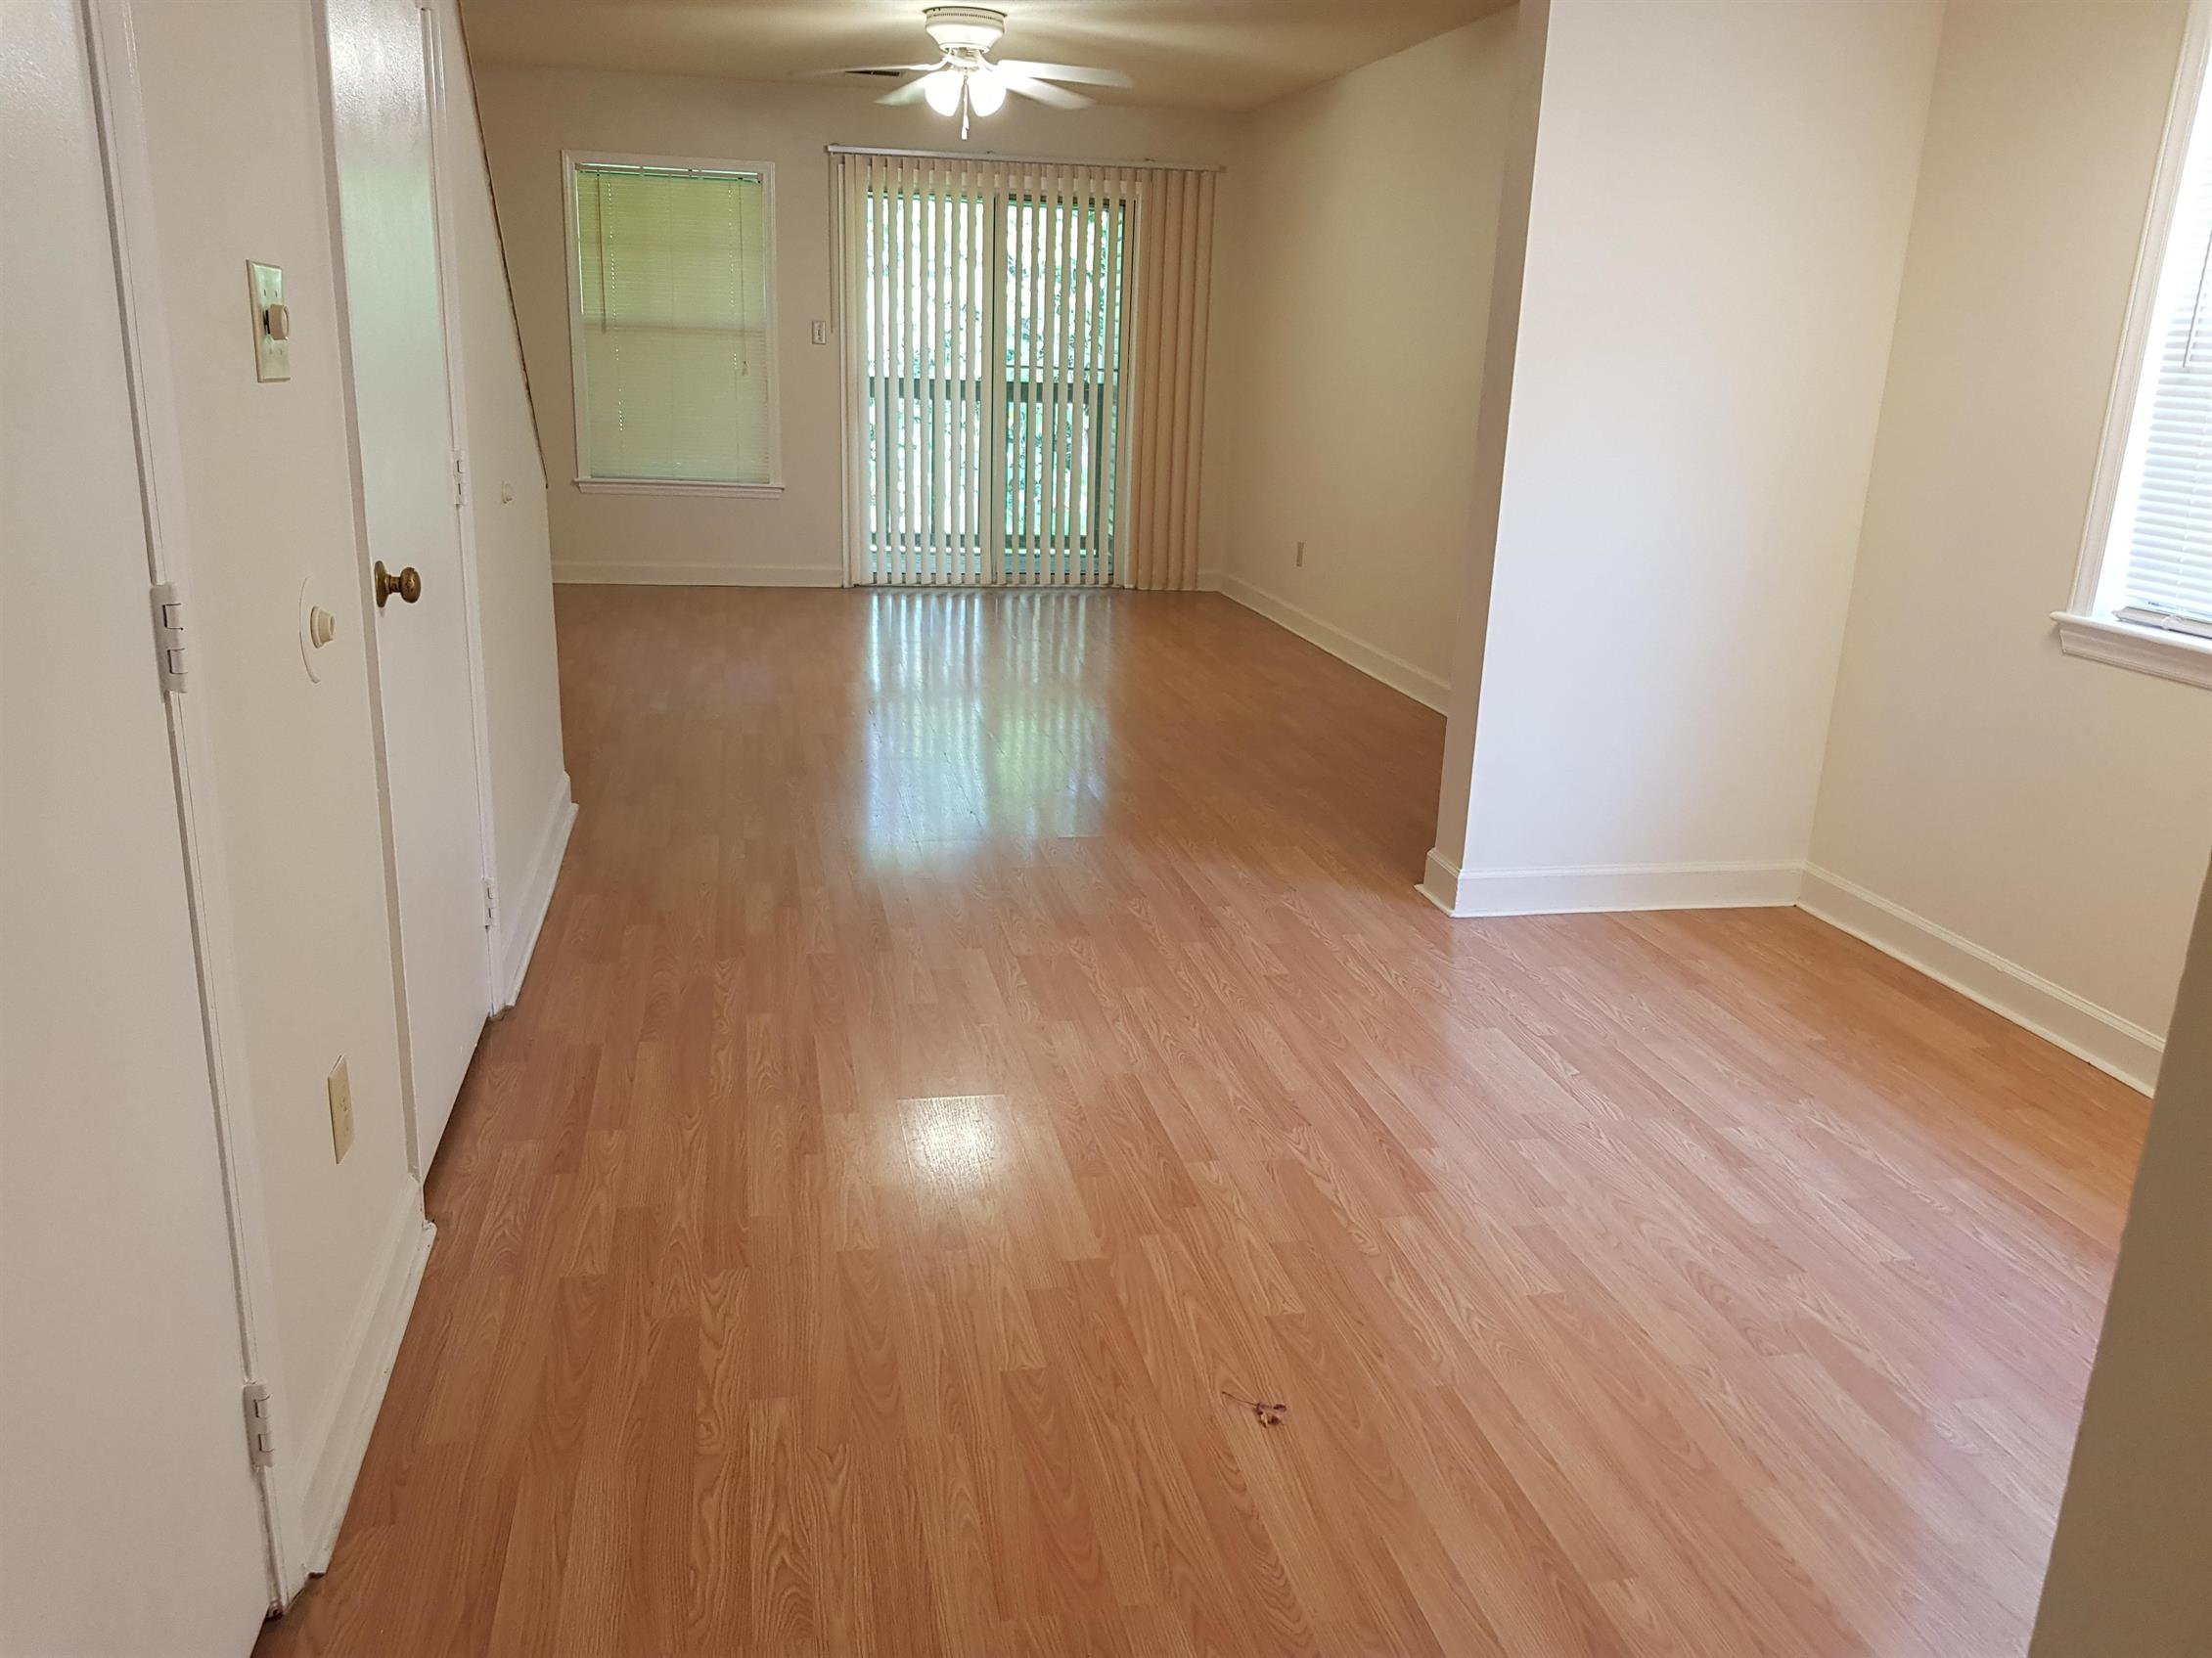 Image of 2512-201 Avent Ferry Road Raleigh, NC 27606